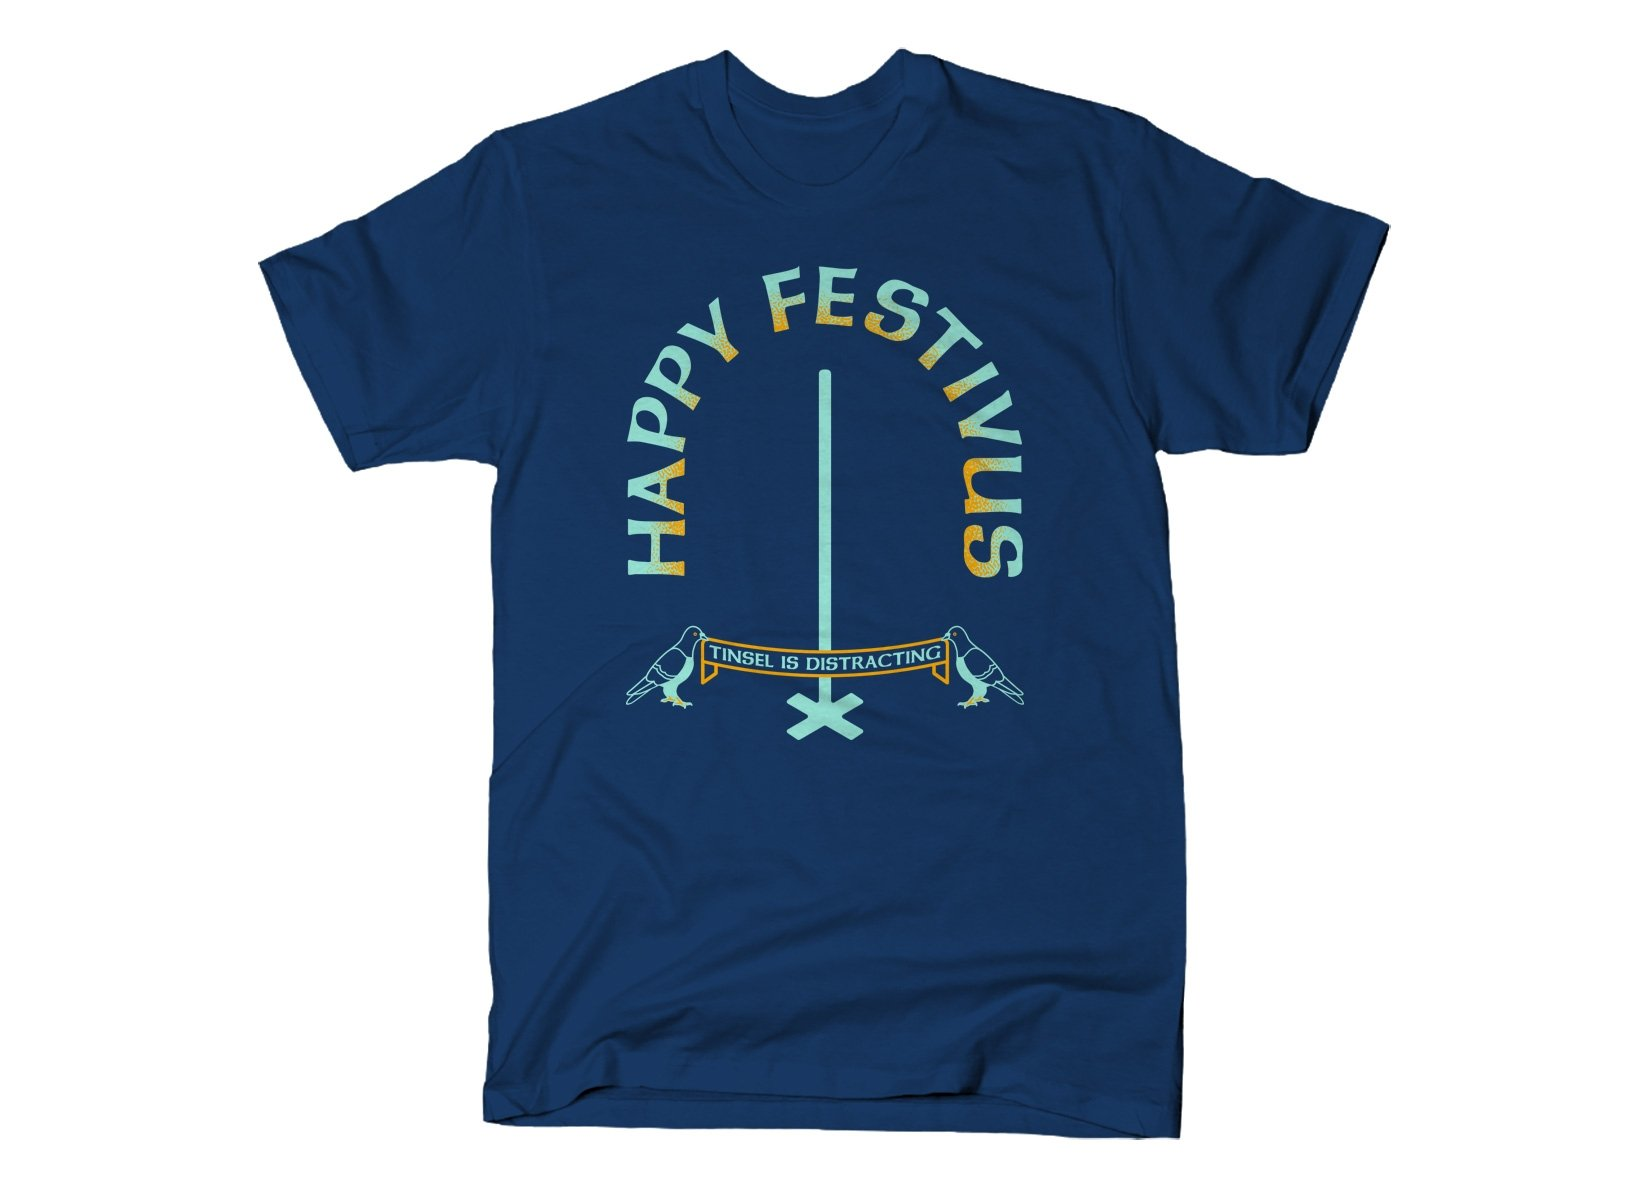 Happy Festivus on Mens T-Shirt